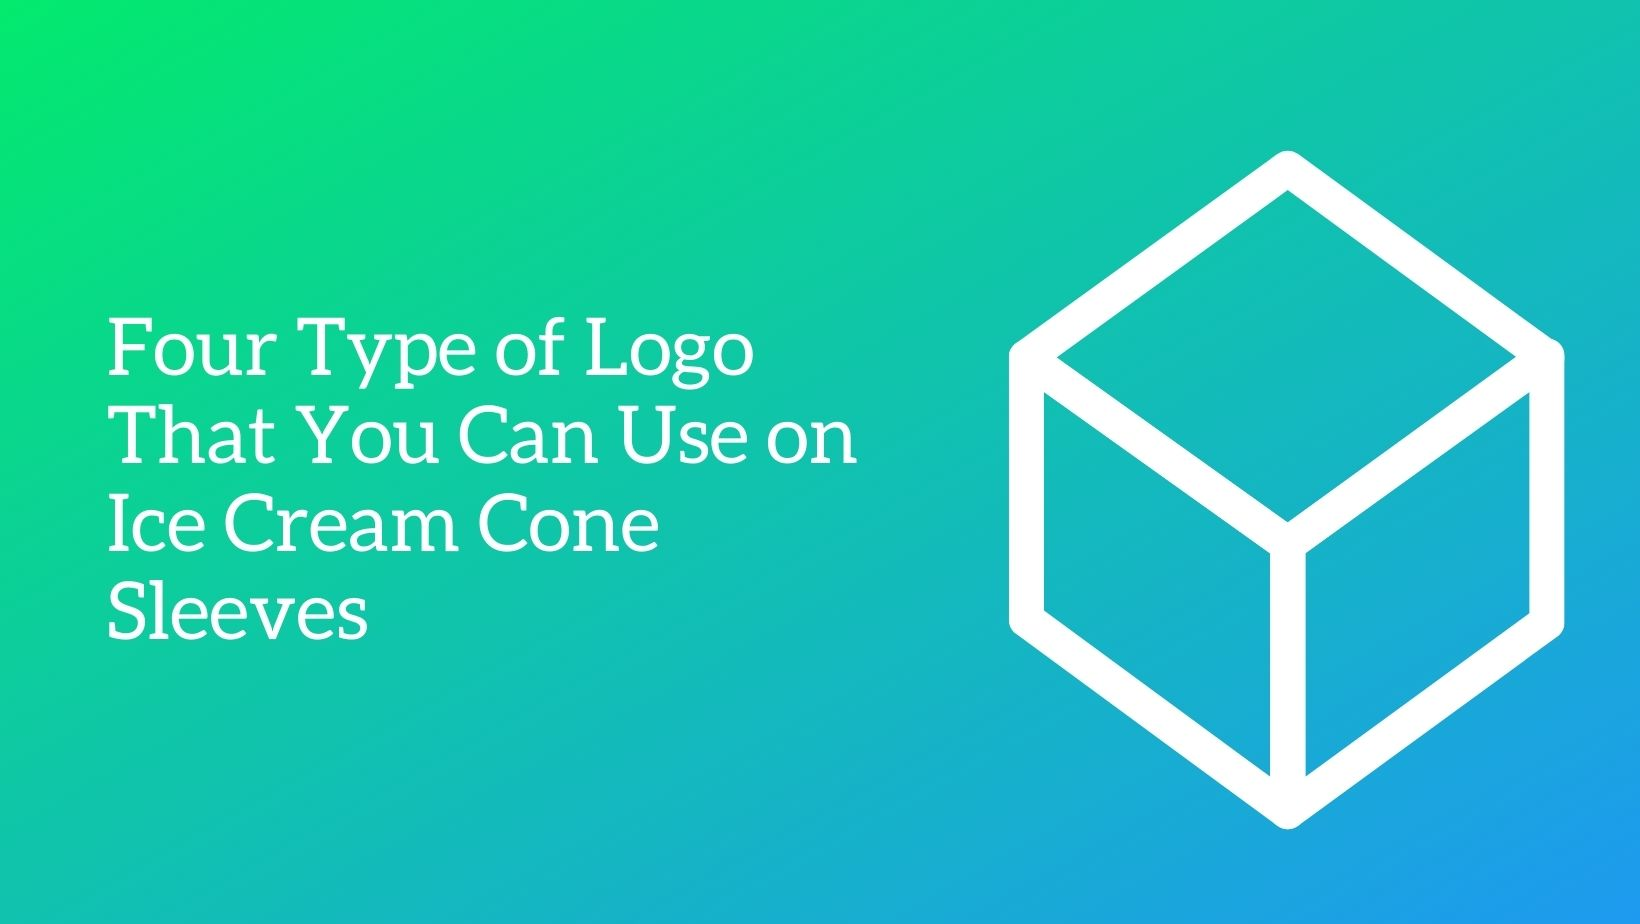 Four Type Of Logo That You Can Use On Ice Cream Cone Sleeves